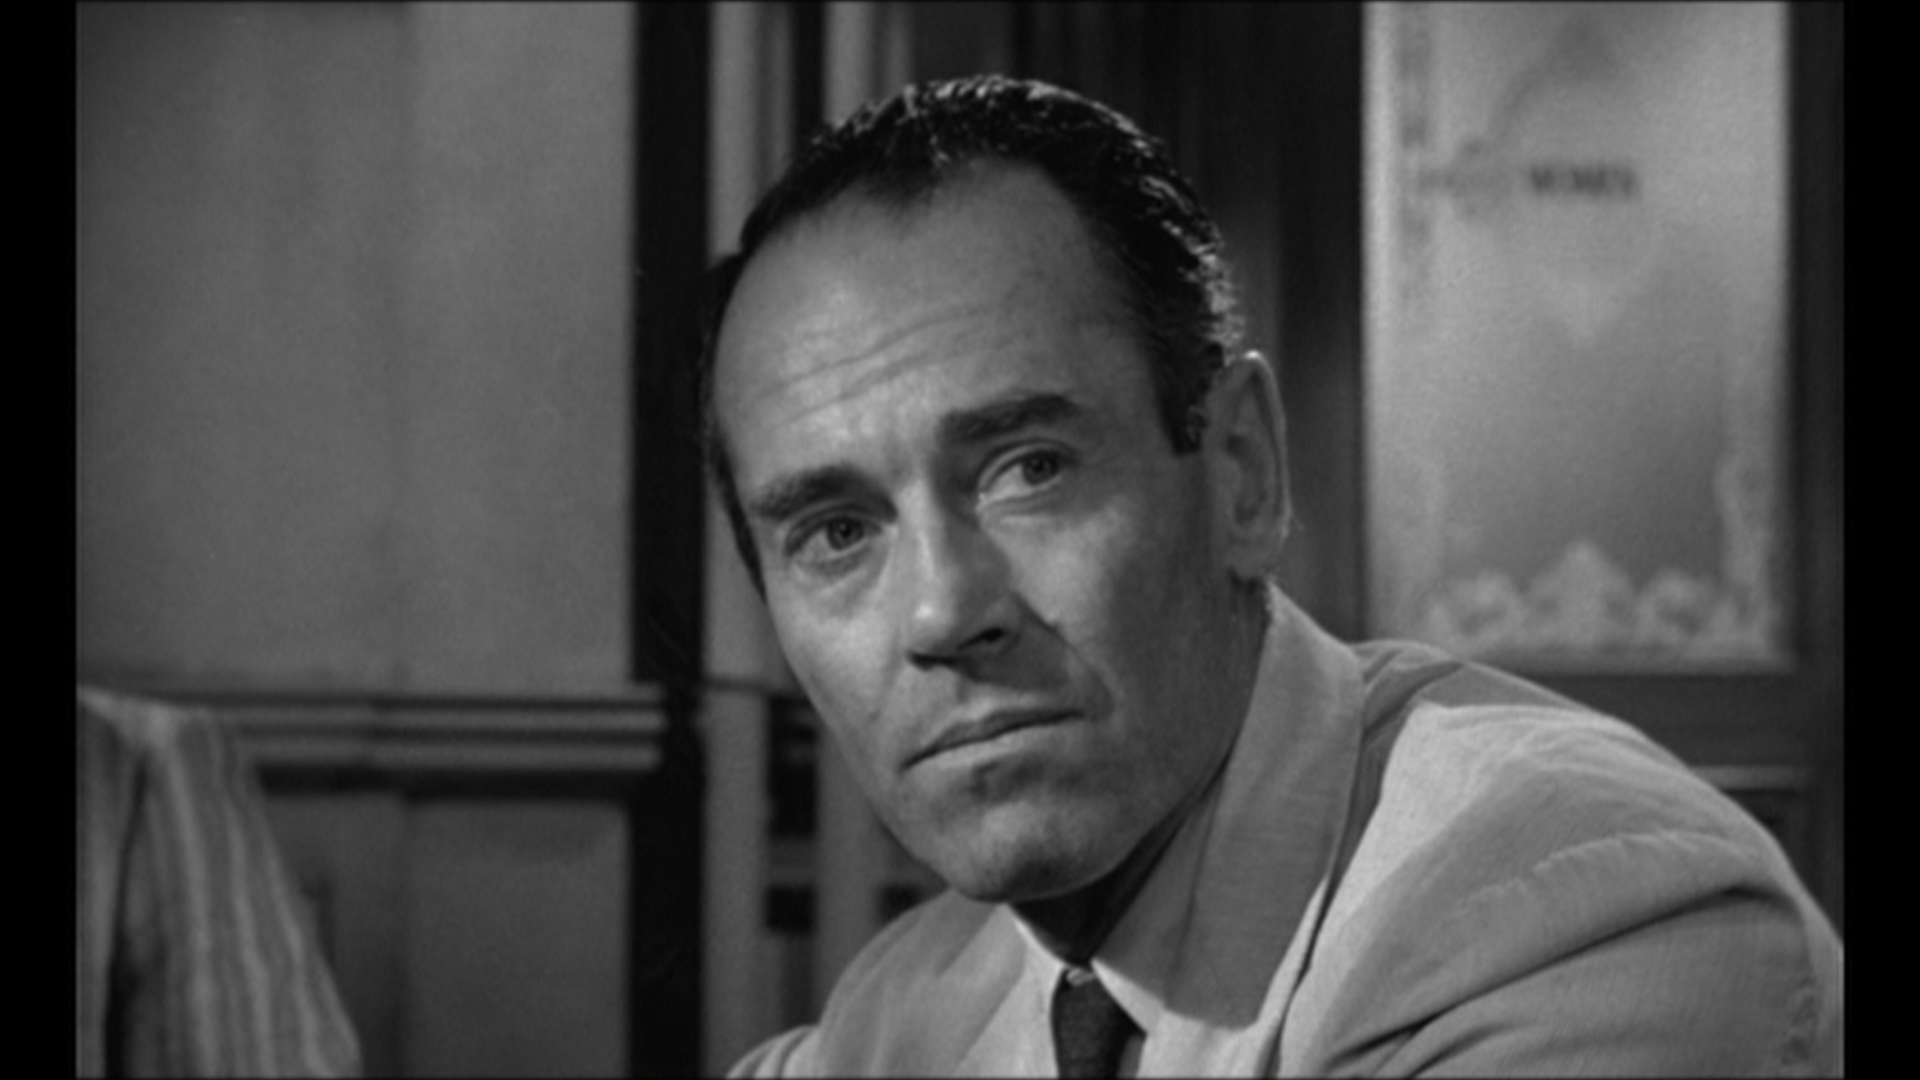 an overview of the movie twelve angry men directed by sidney lumet Overview of 12 angry men, 1957, directed by sidney lumet, with henry fonda, lee j cobb, ed begley, at turner classic movies.